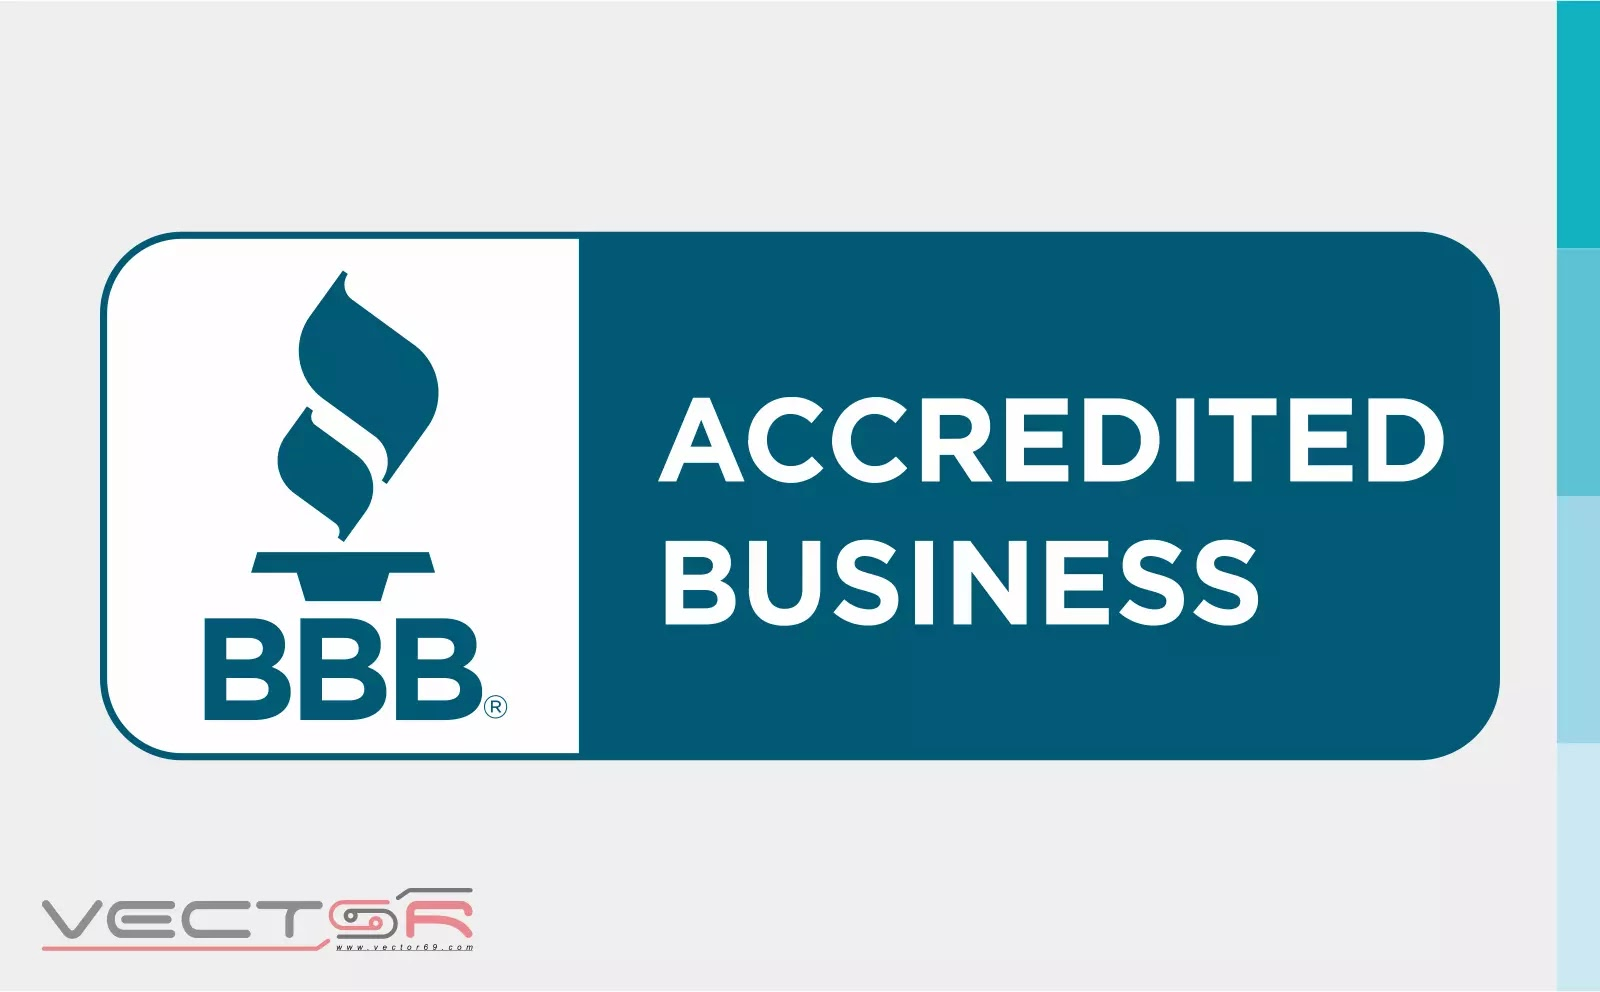 BBB Accredited Business Horizontal Seal - Download Vector File SVG (Scalable Vector Graphics)